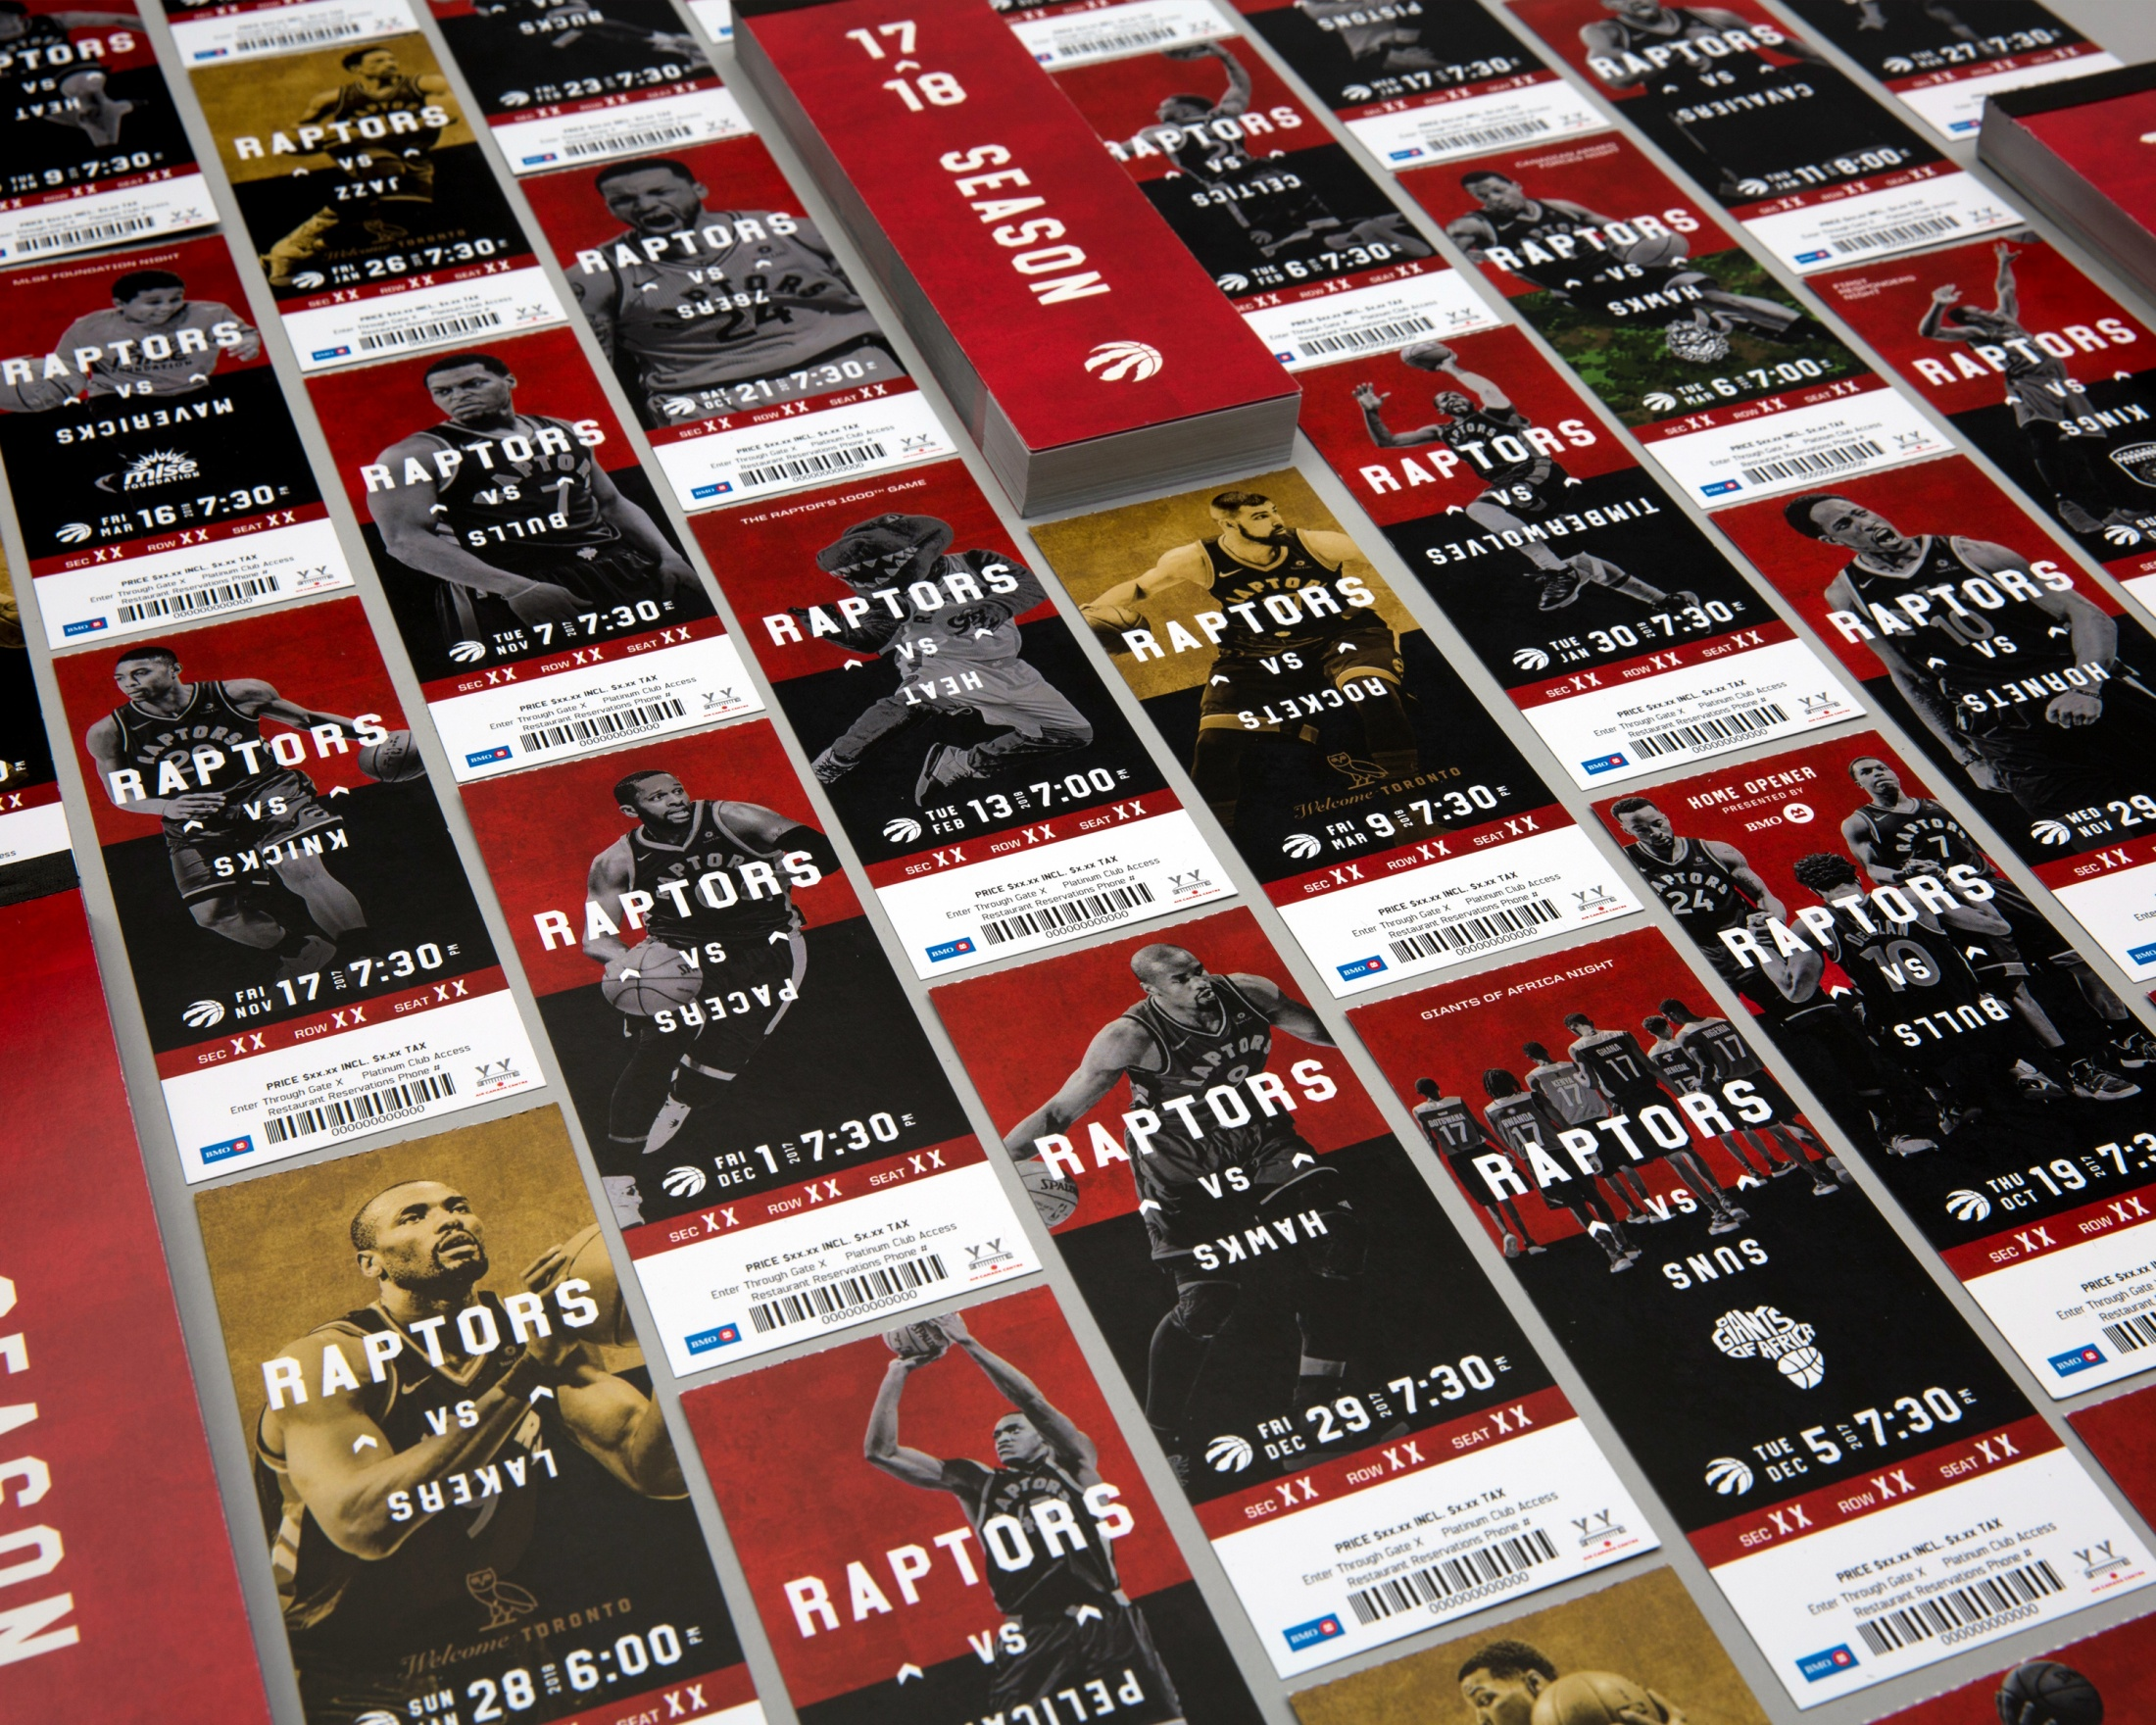 Thumbnail for Toronto Raptors Season Ticket Package 2017-18